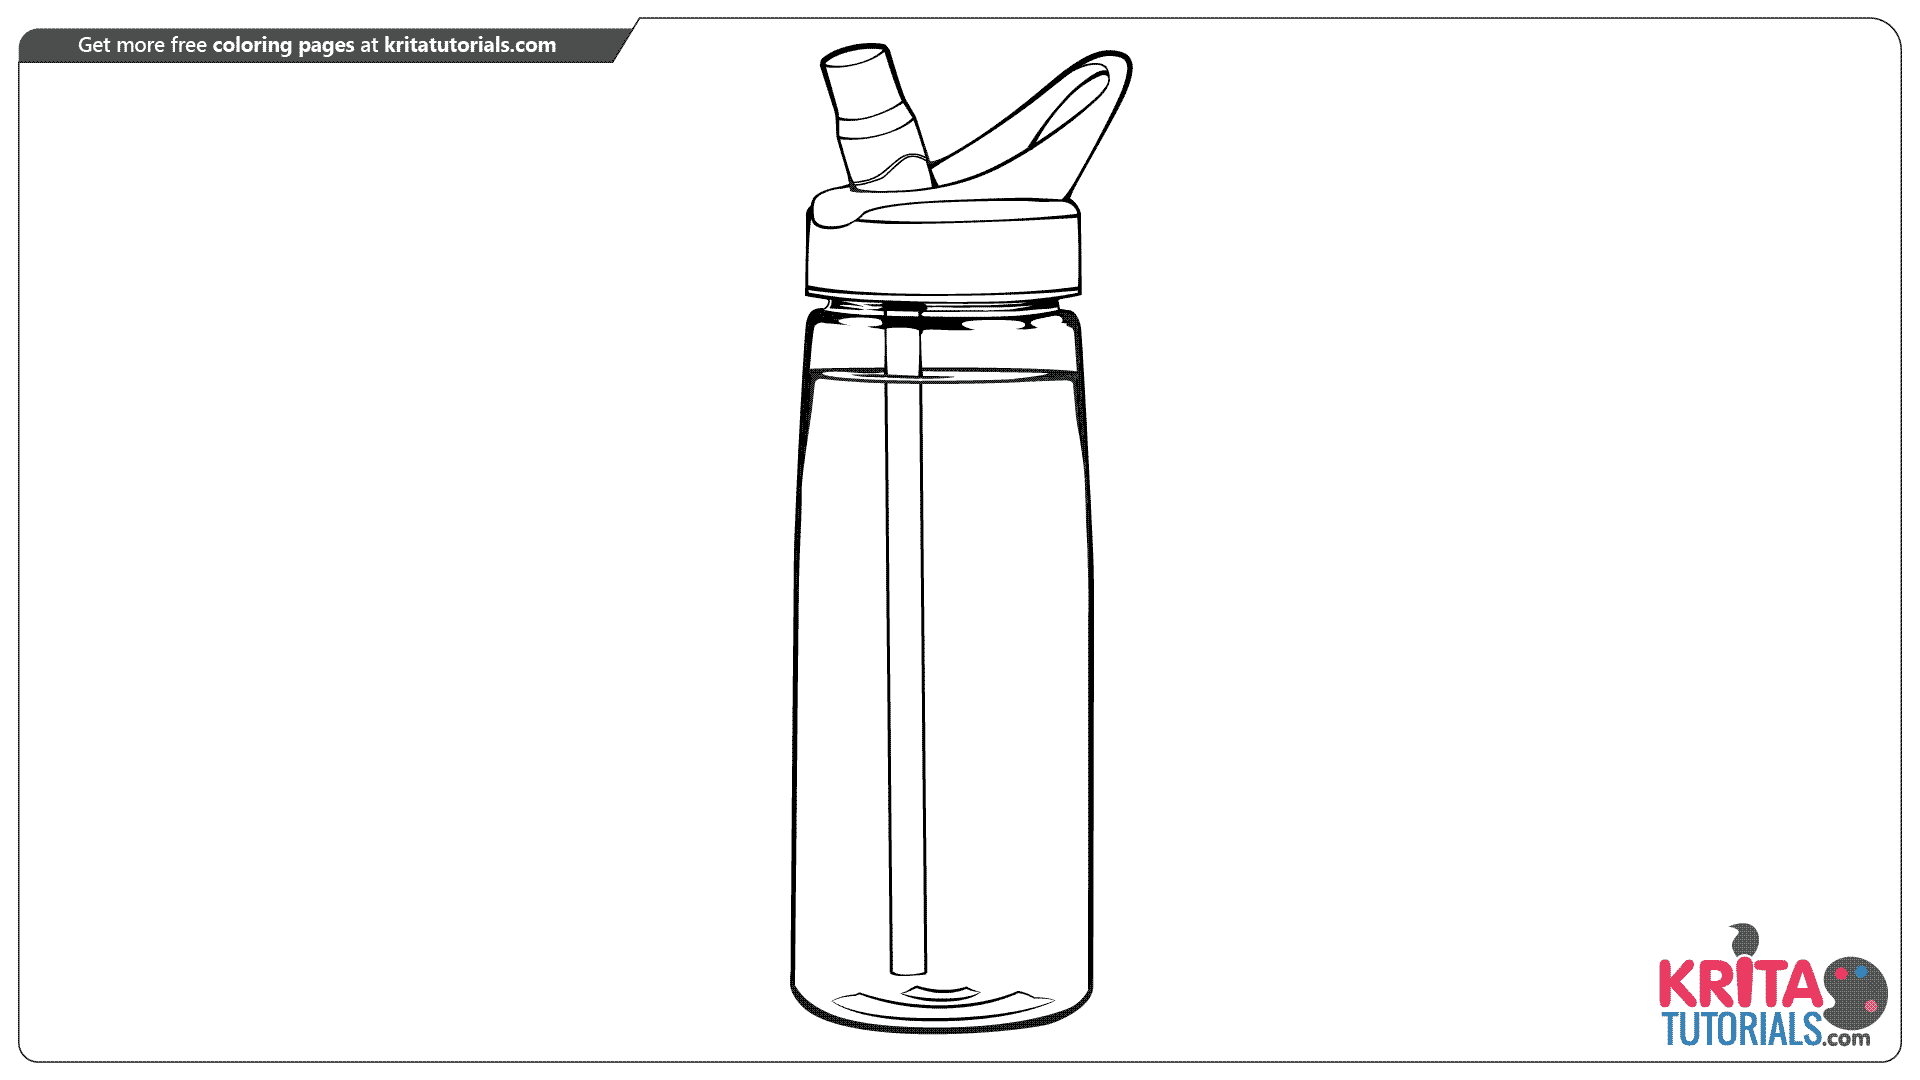 Water bottle coloring page from kritatutorials.com